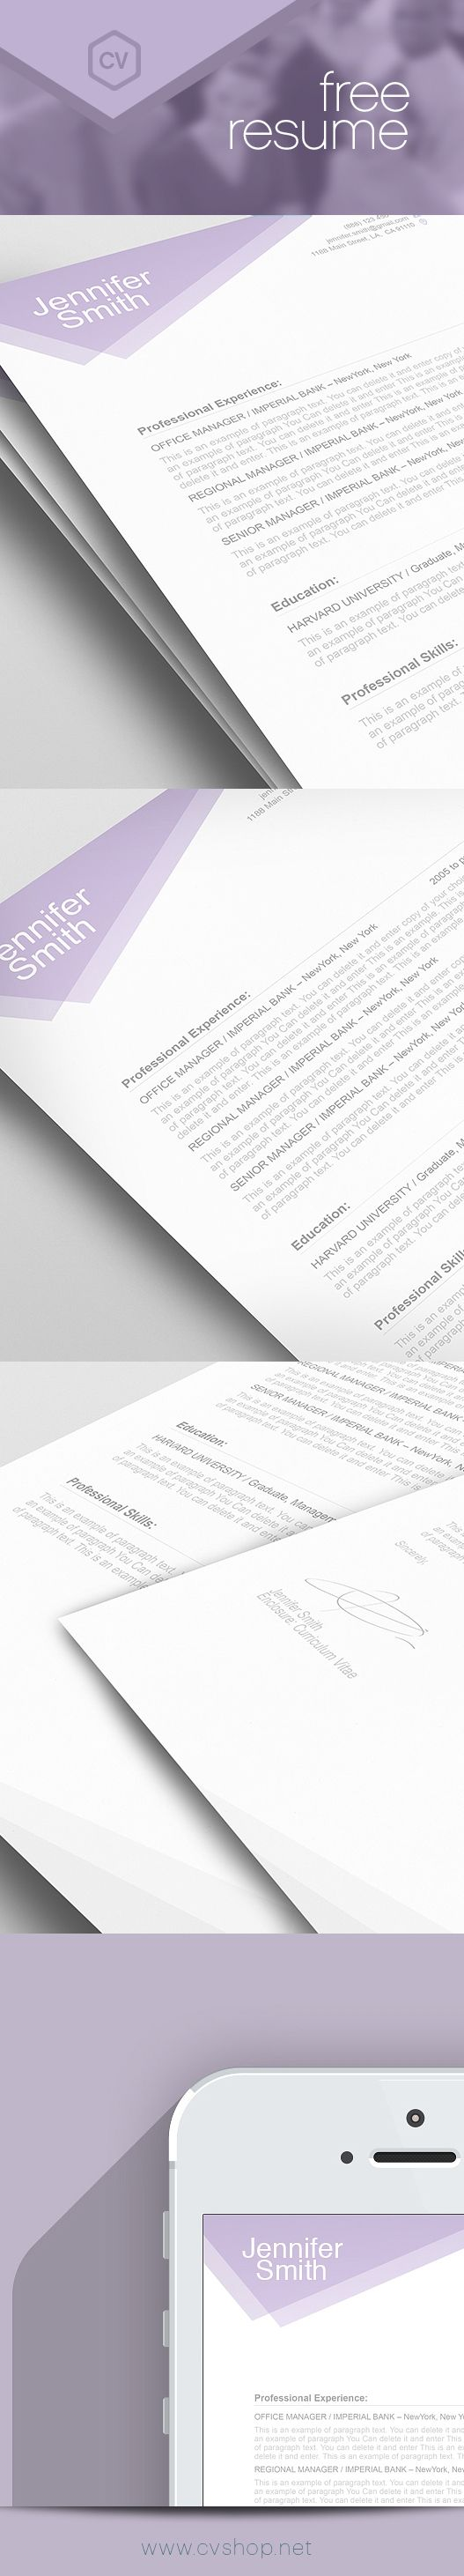 Resume Template 100030 Free Resume Templates